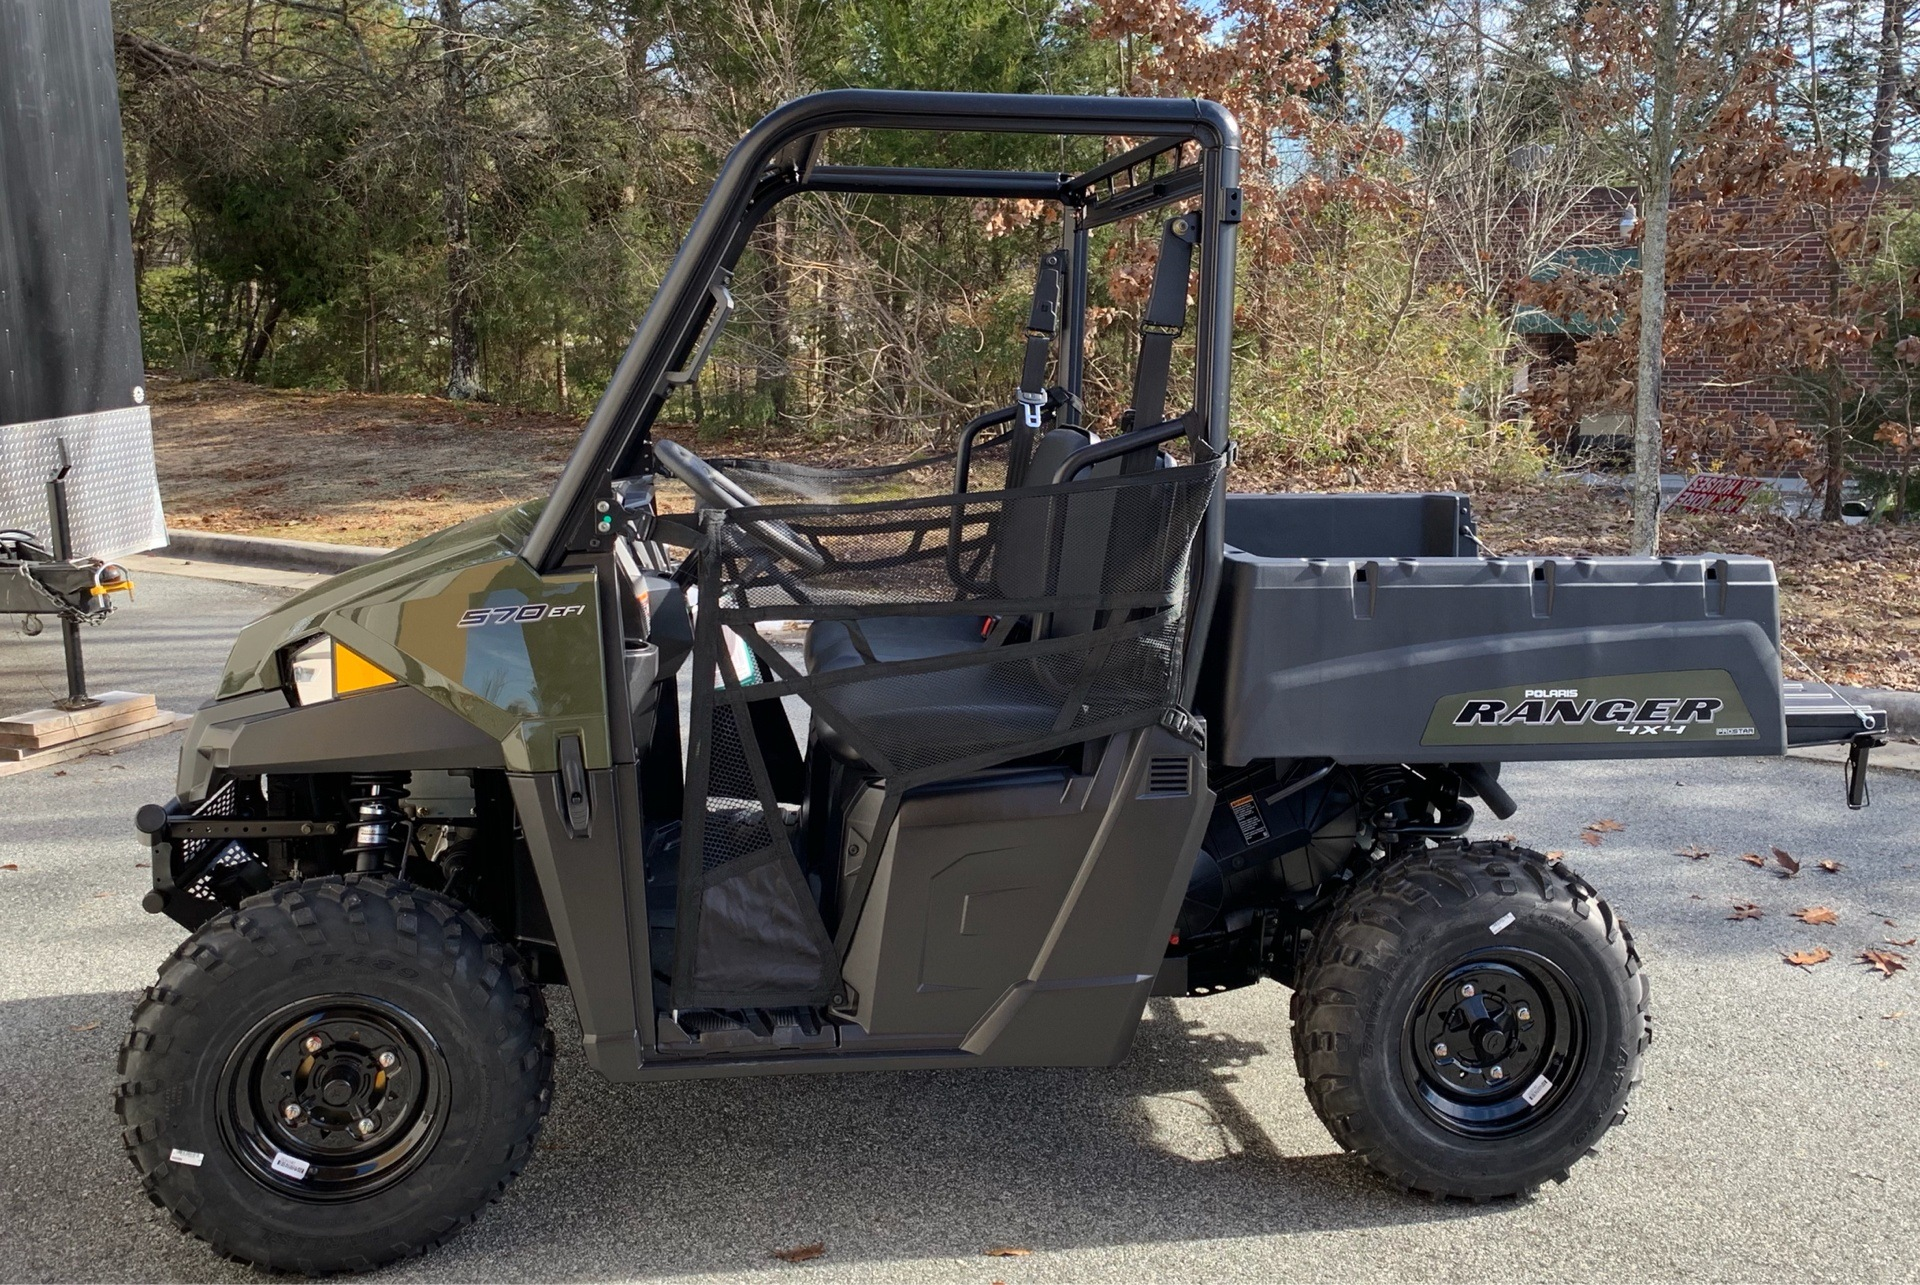 2019 Polaris Ranger 570 in High Point, North Carolina - Photo 5